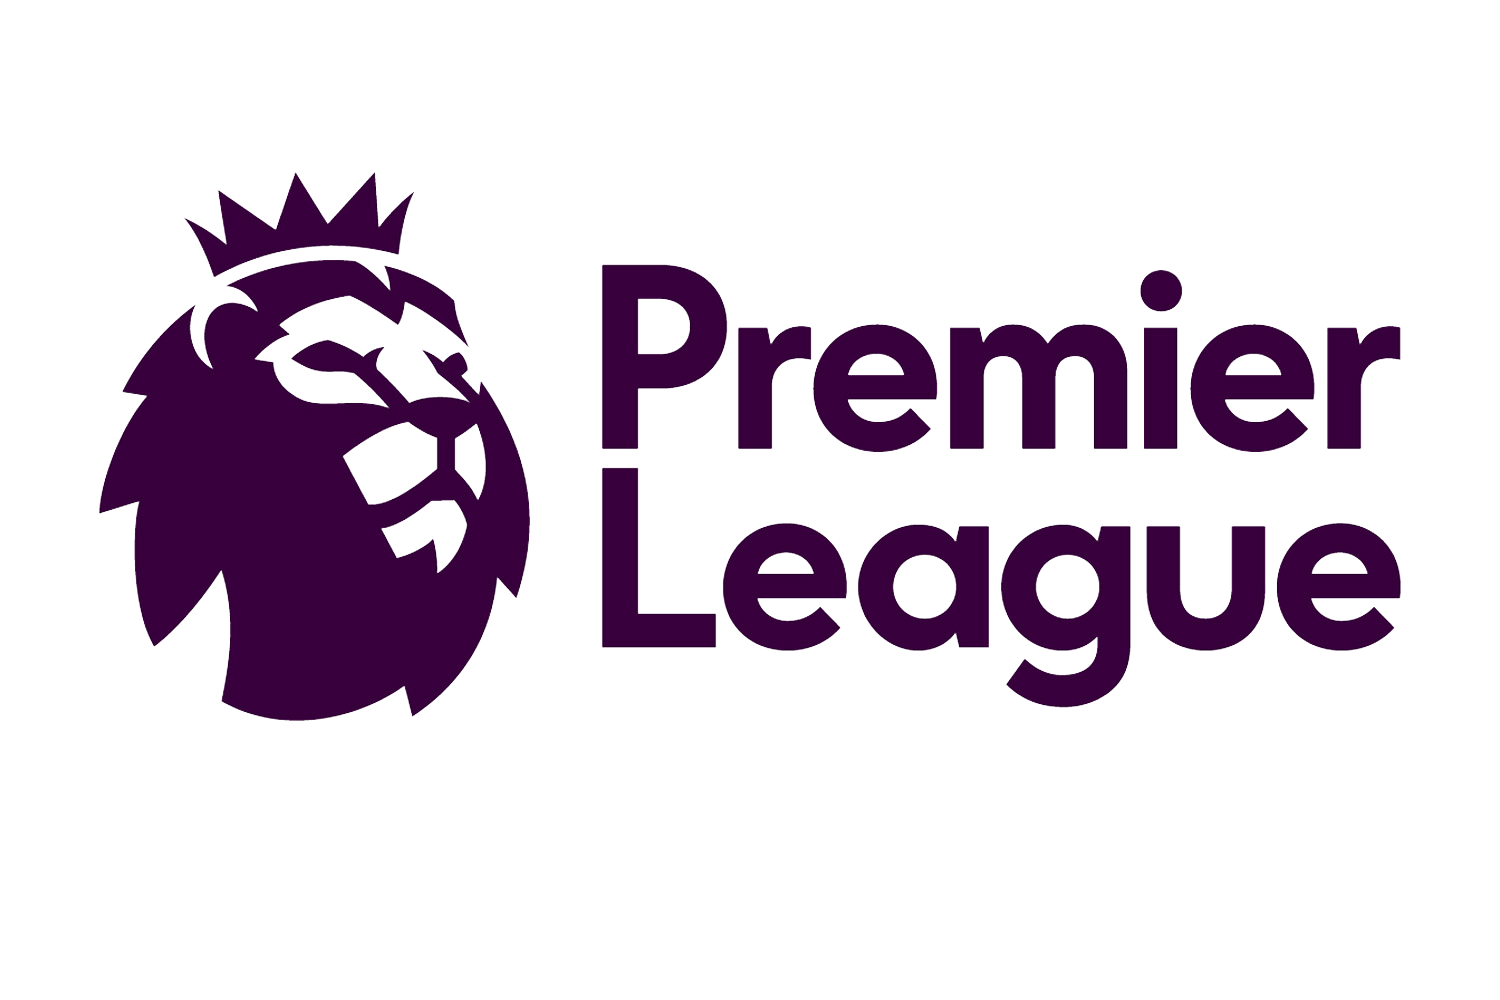 Premier League Transparent Background.